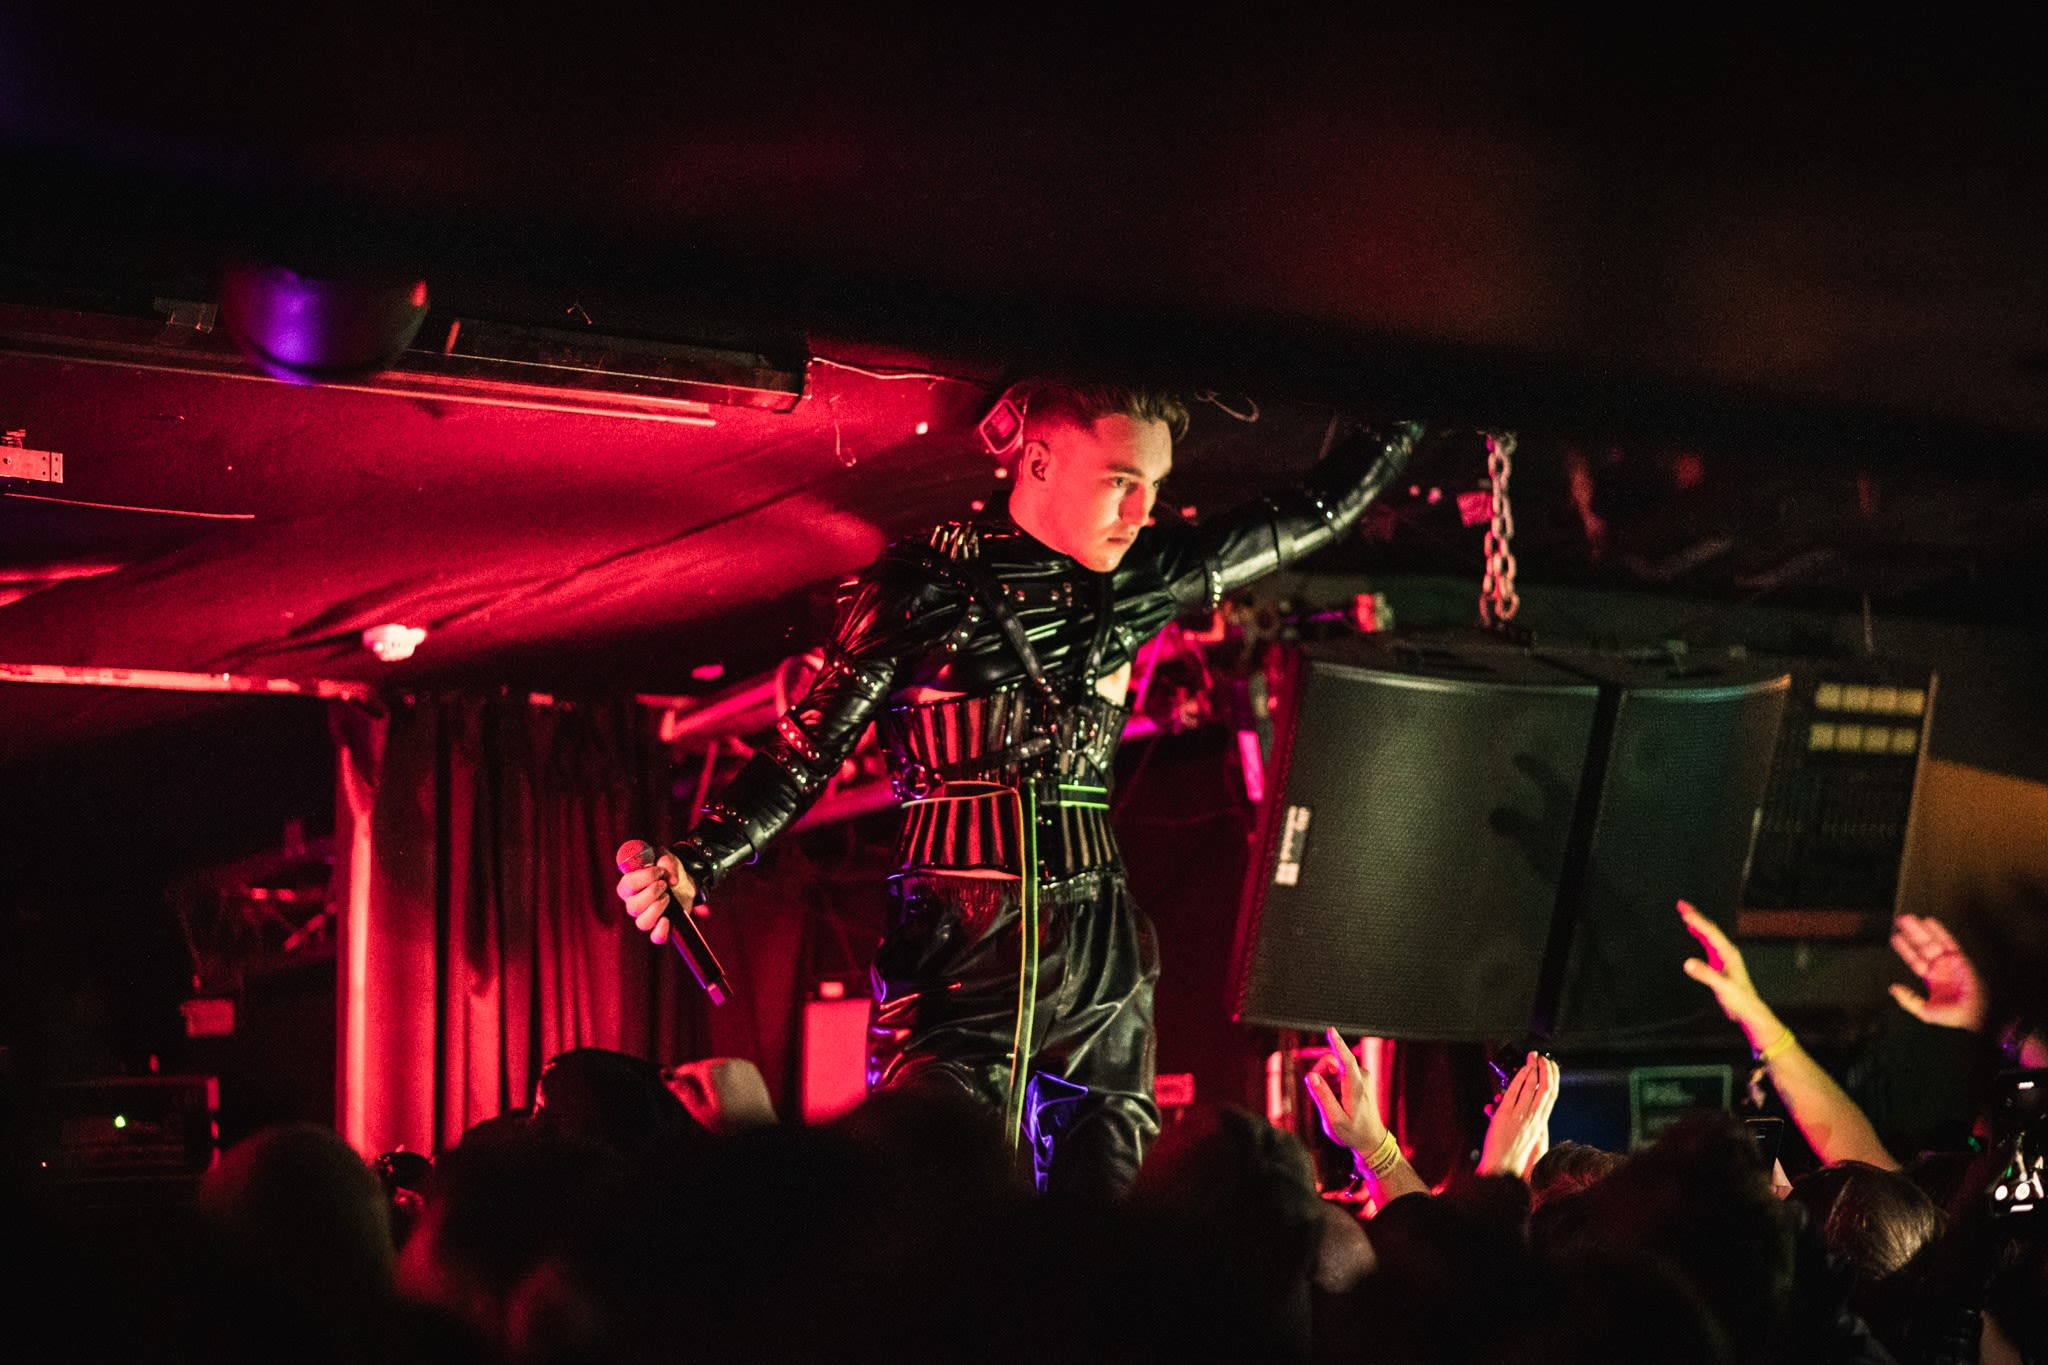 Icelandic artists, Hatari, performing to a lively crowd at Iceland Airwaves 2019